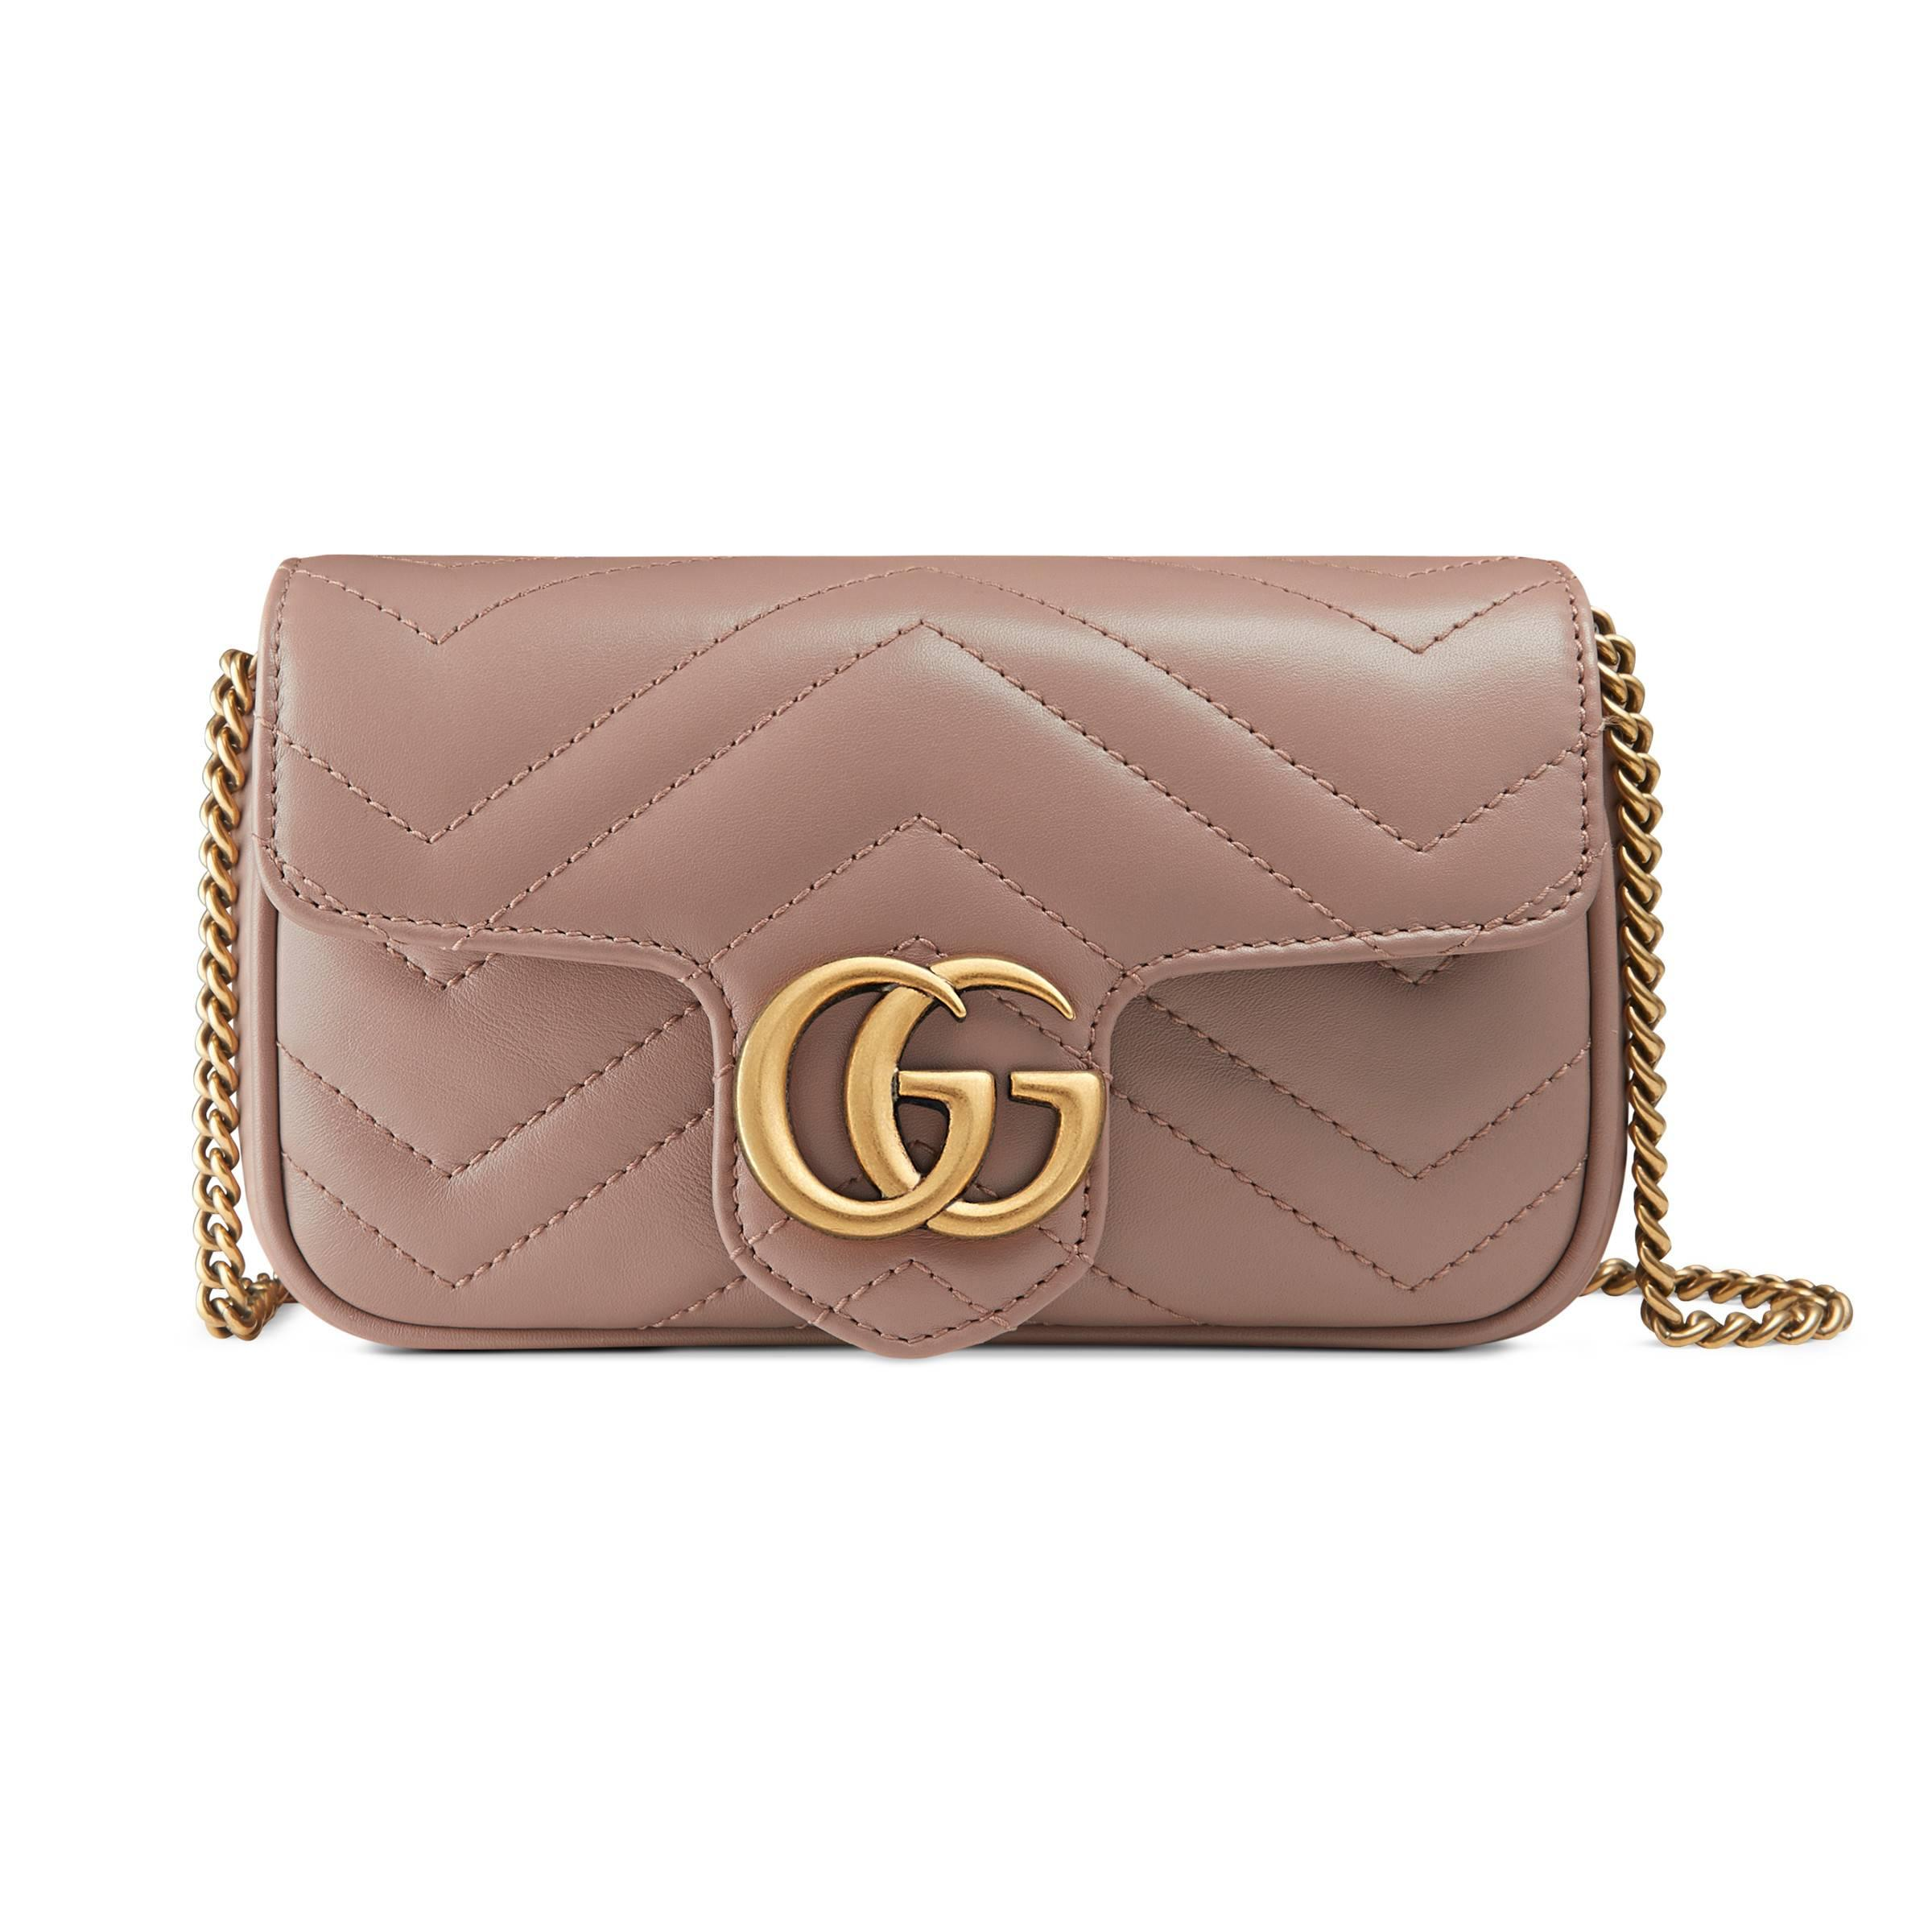 a68e5e627c7 Gucci Gg Marmont Matelassé Leather Super Mini Bag in Pink - Lyst